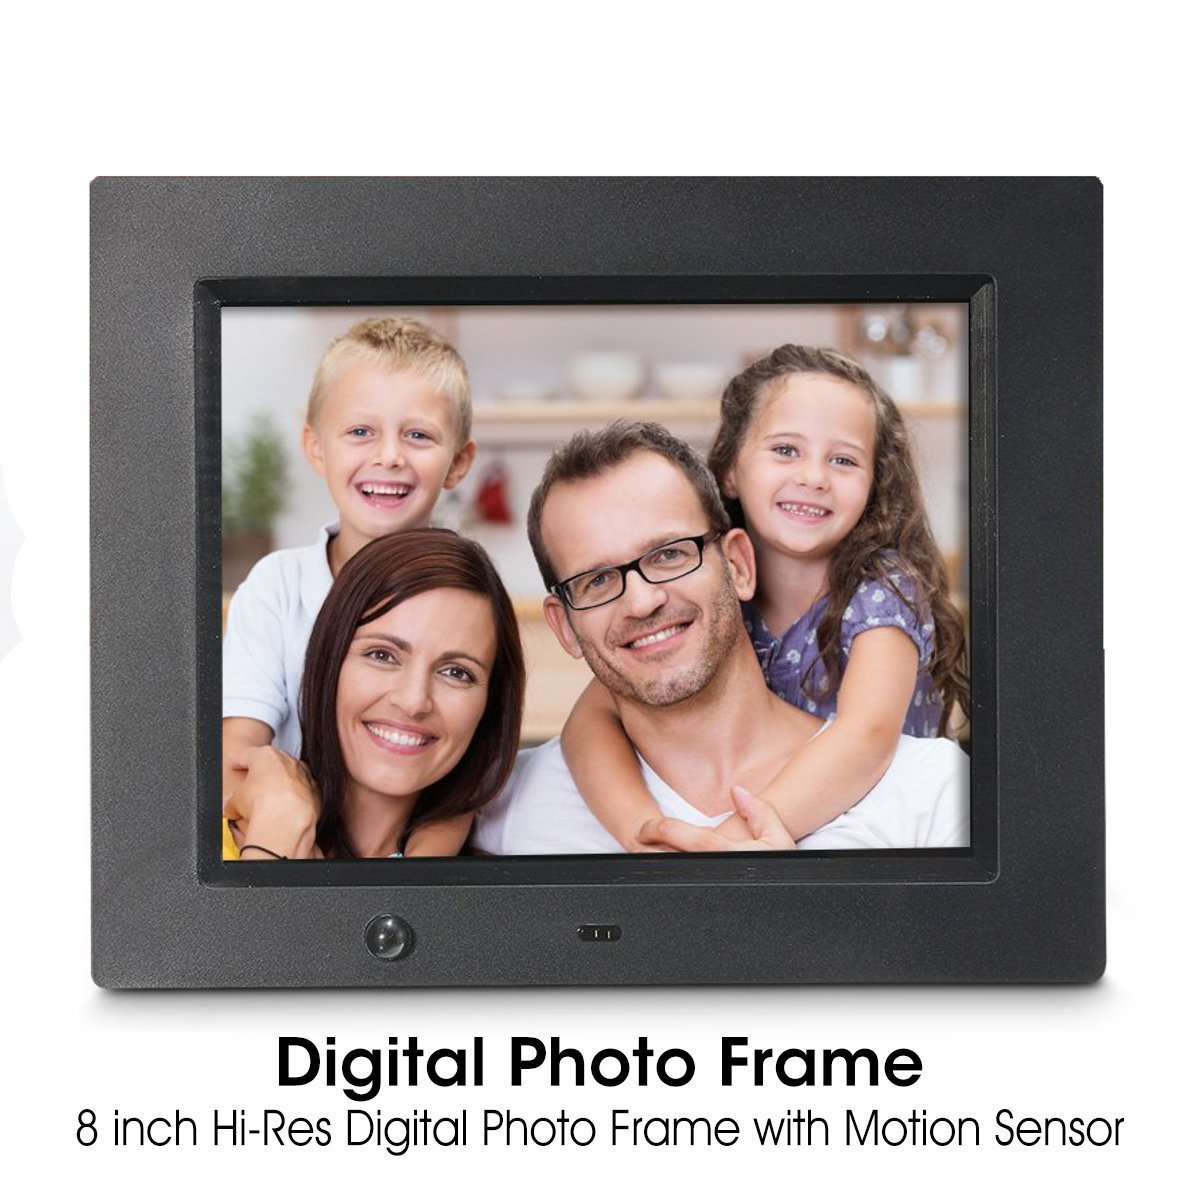 Digital Photo Frame, Wireless Mouse Control, 8 inch LCD Wi-Fi Cloud Digital Rahmen Photo Viewer with Motion Sensor & 720p HD Video & Music Playback, INSMA by INSMA